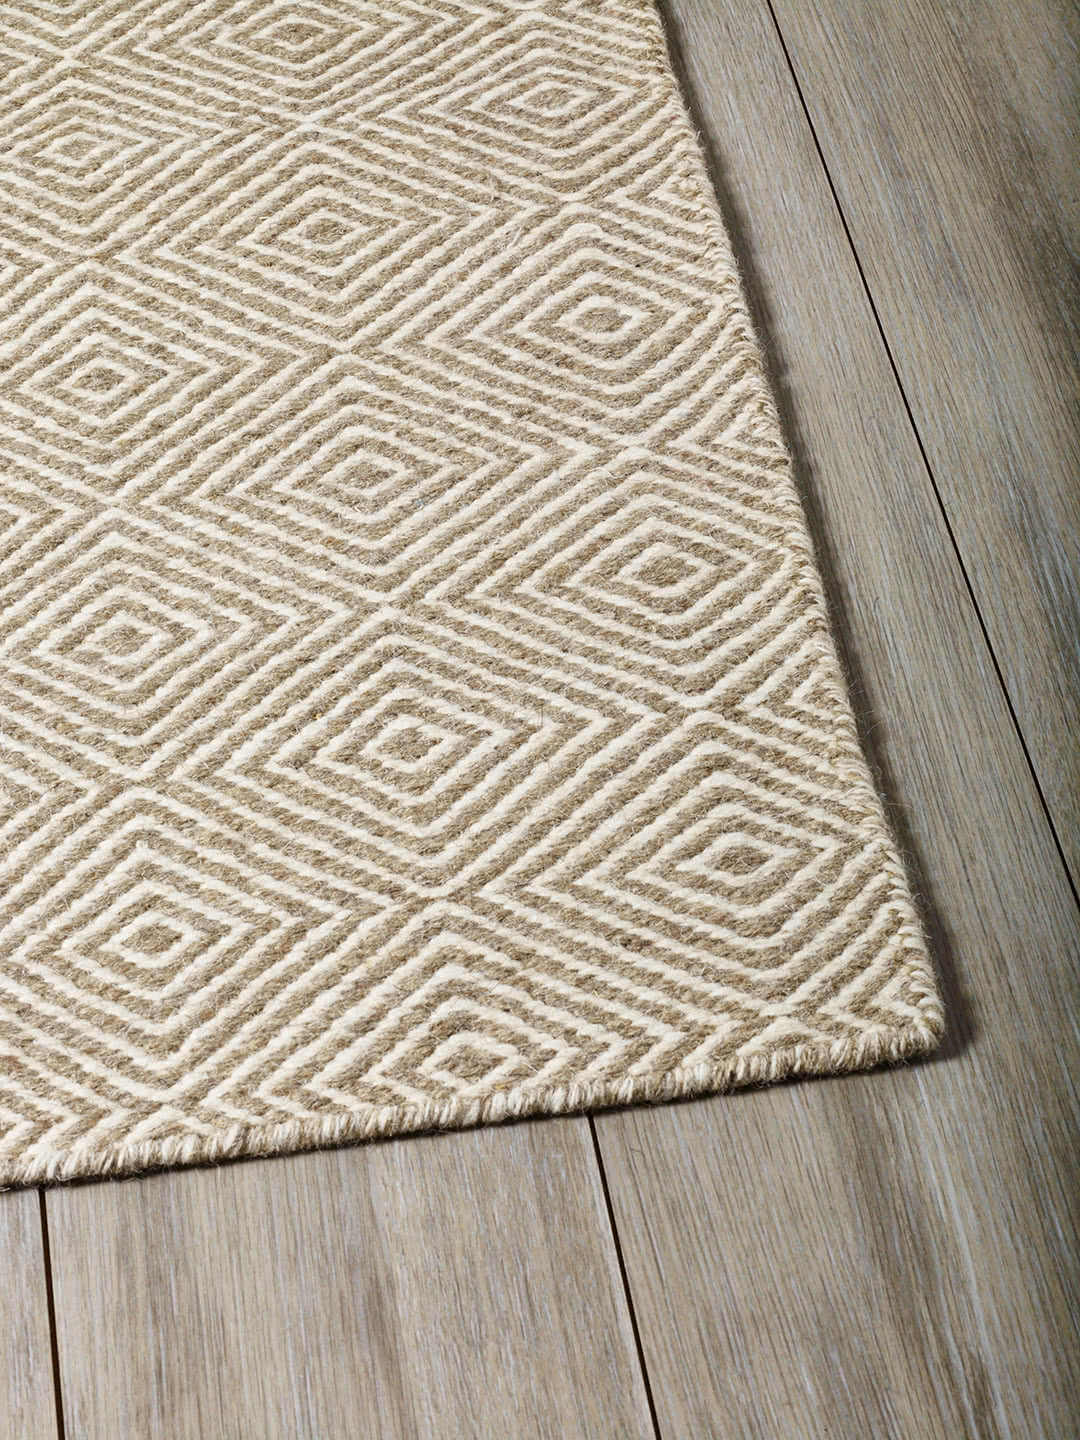 Natural Beige pure wool rugs Perth